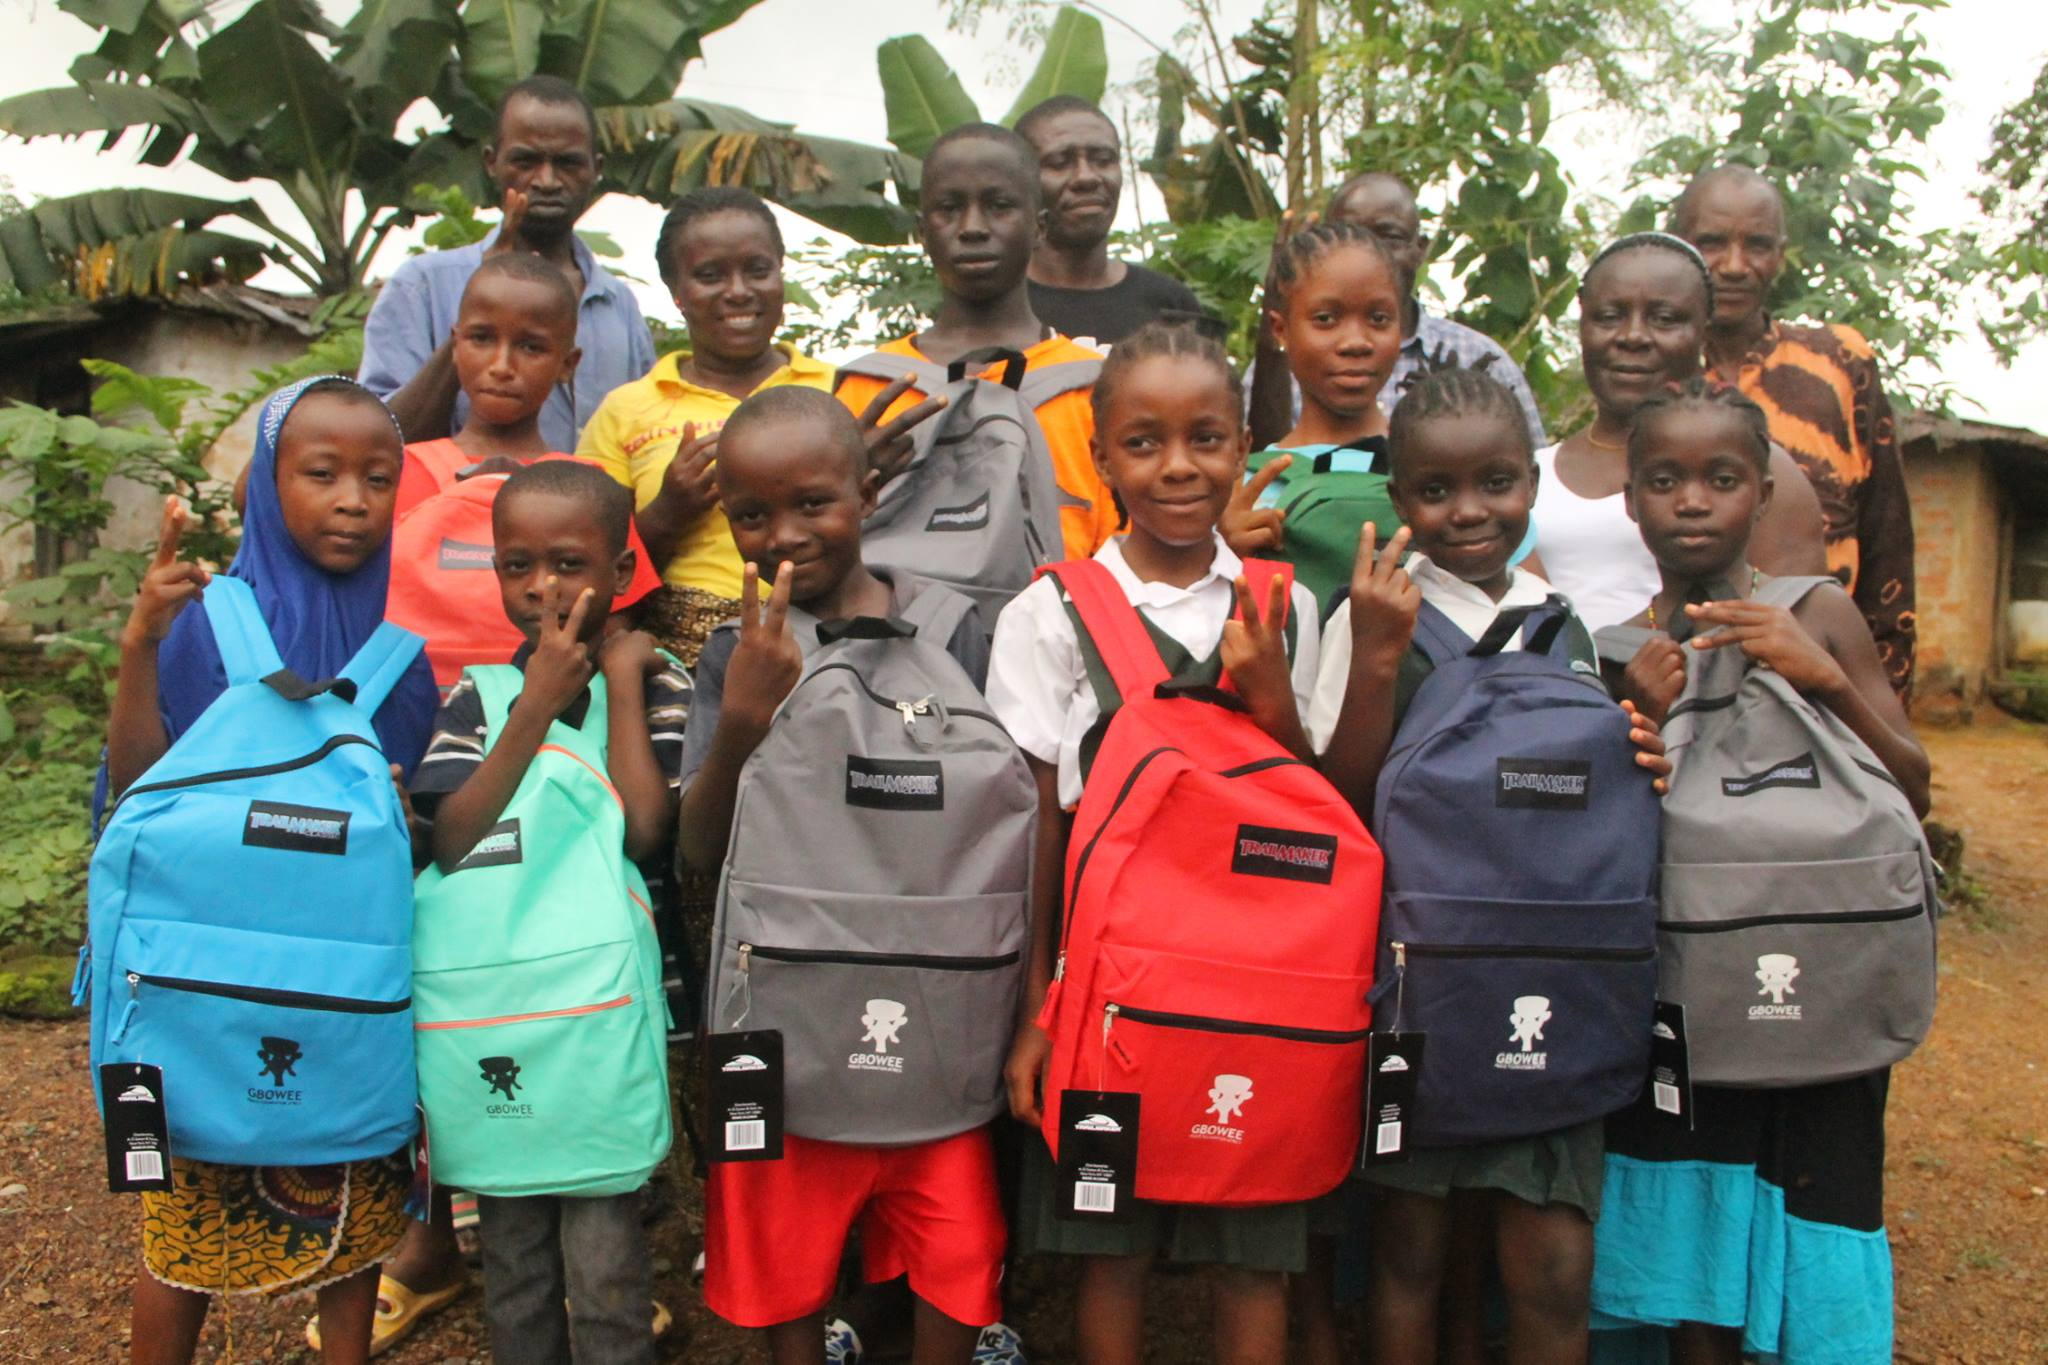 GBOWEE PEACE FOUNDATION AFRICA-USA - Book Bag Drive 2019